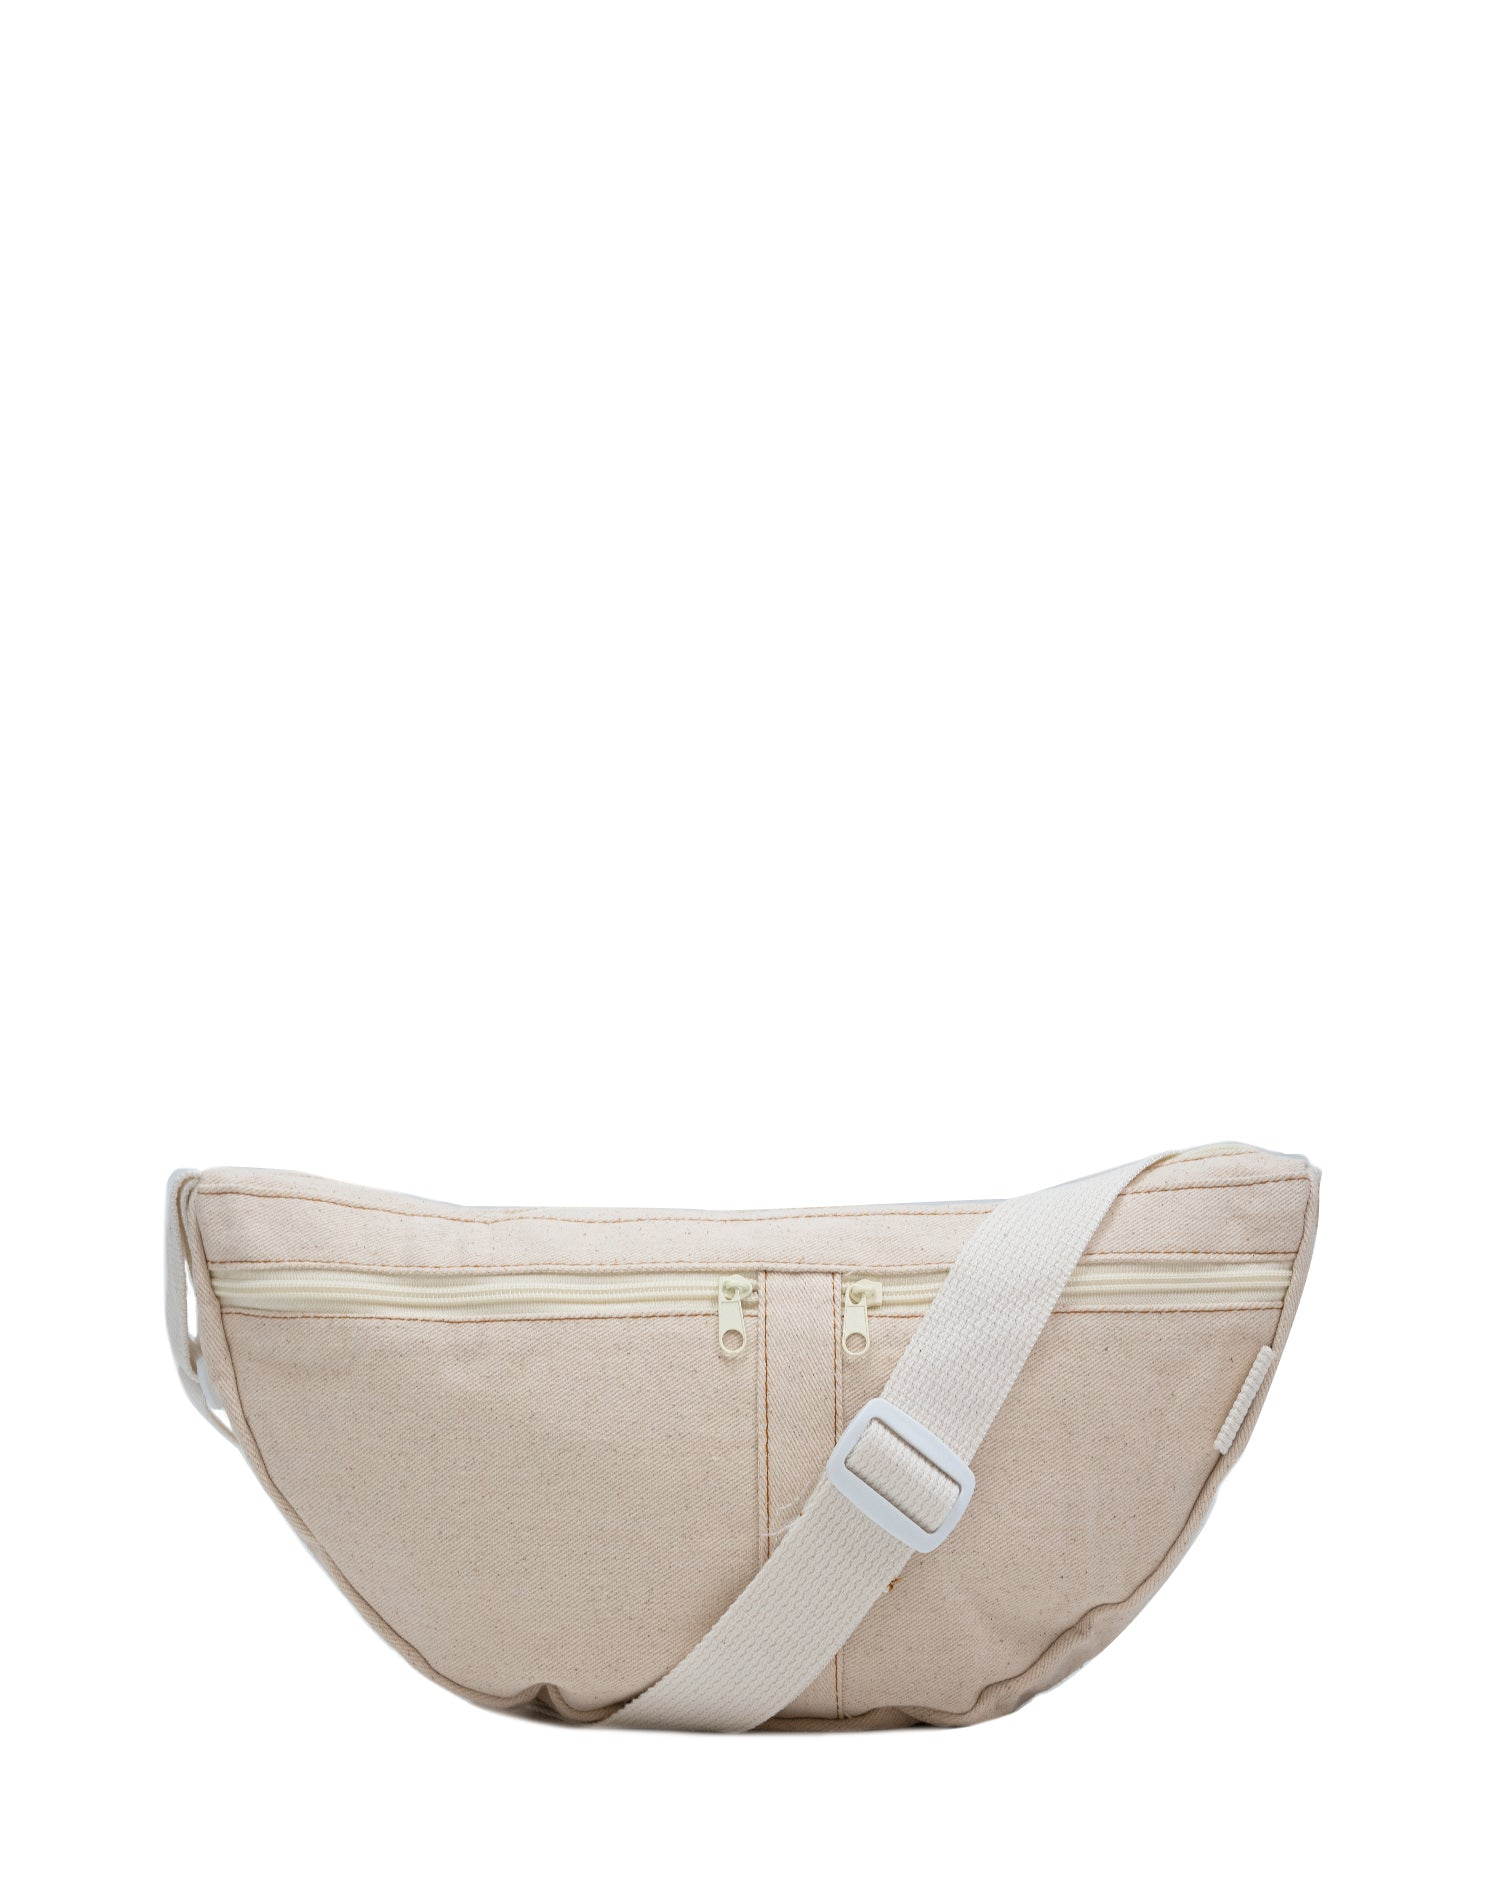 White Canvas Belt Sling Bag.白色帆布斜揹腰包